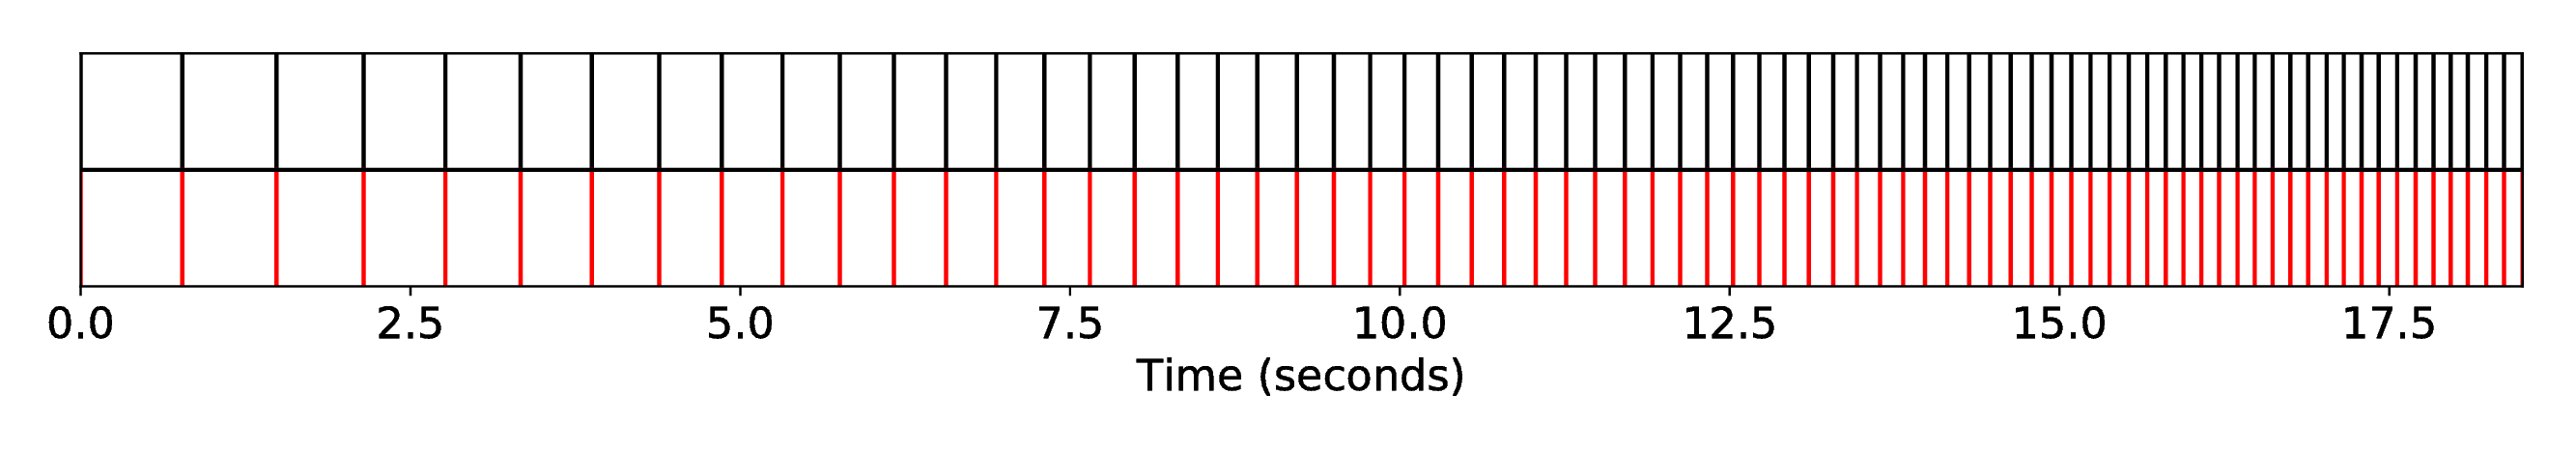 DP1_INT1_R-Syn-In__S-Silence__SequenceAlignment